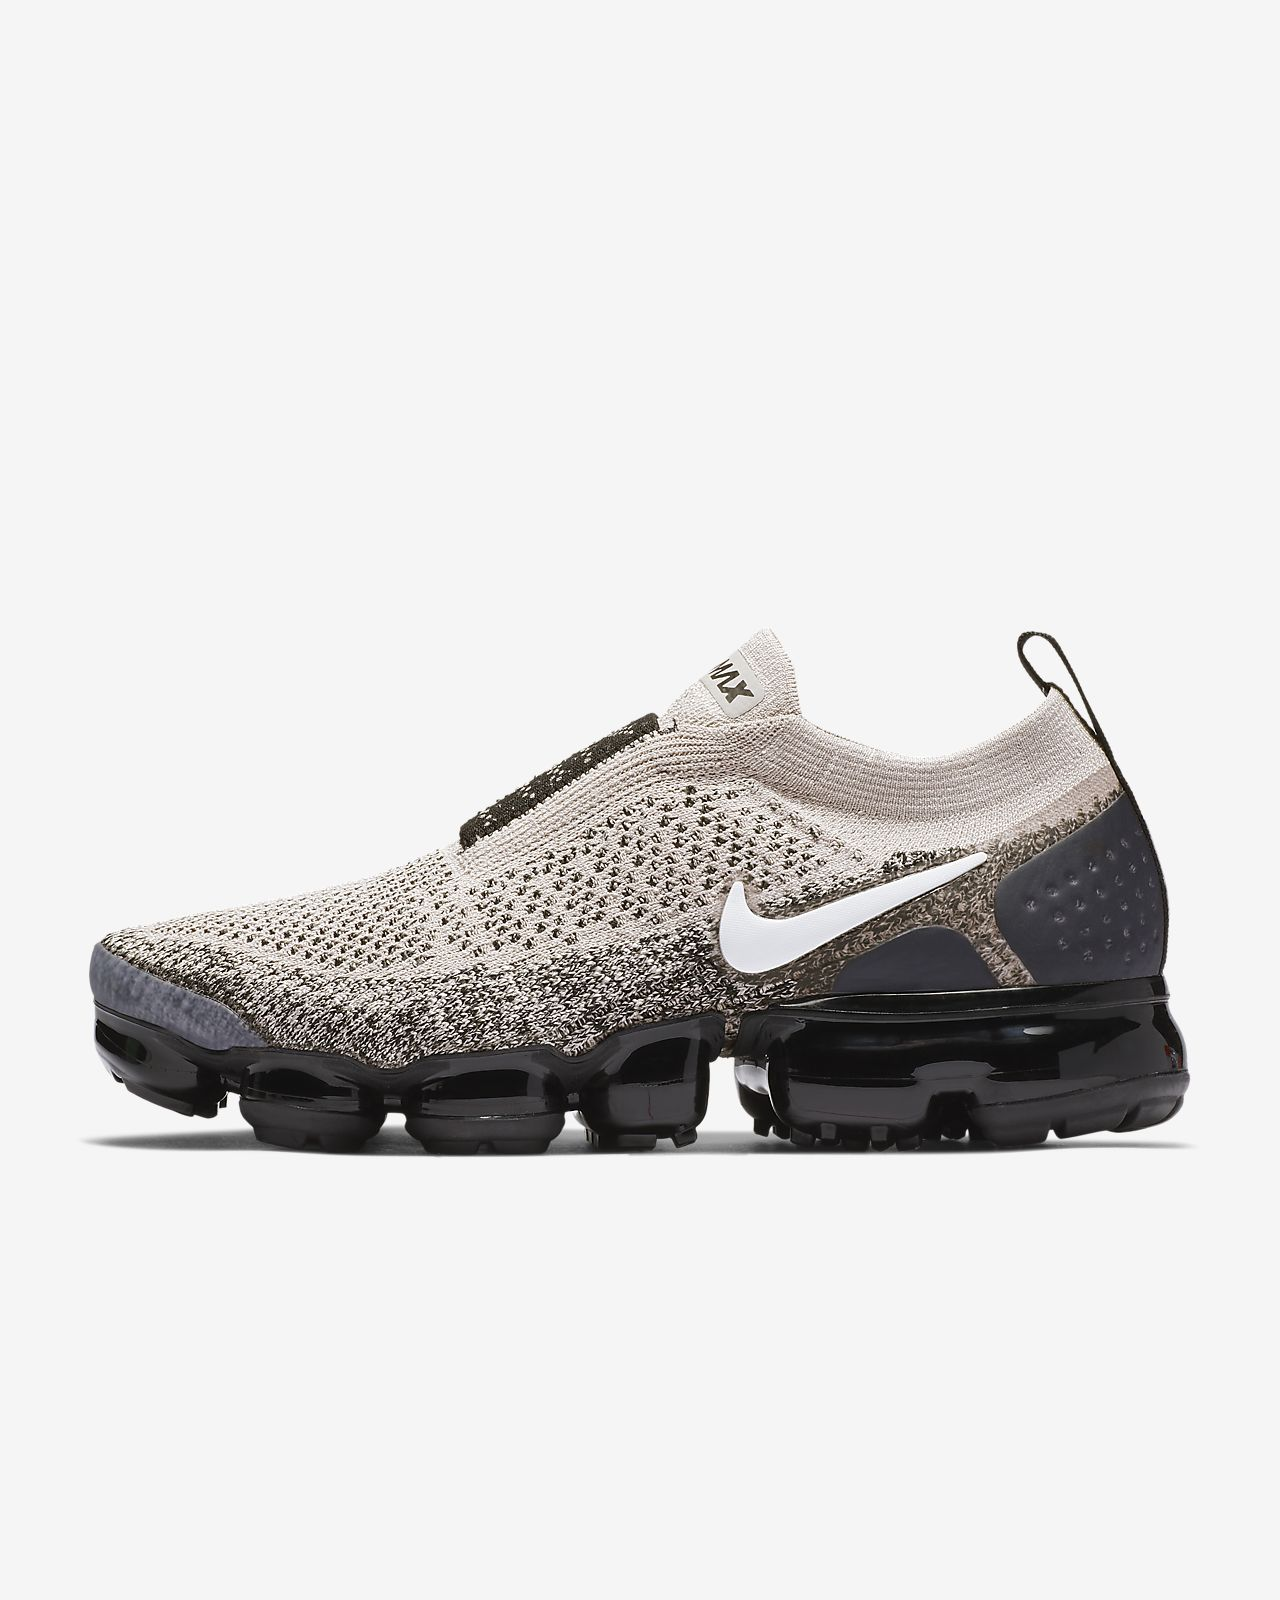 reputable site cbce6 8d4b3 Nike Air VaporMax Flyknit Moc 2